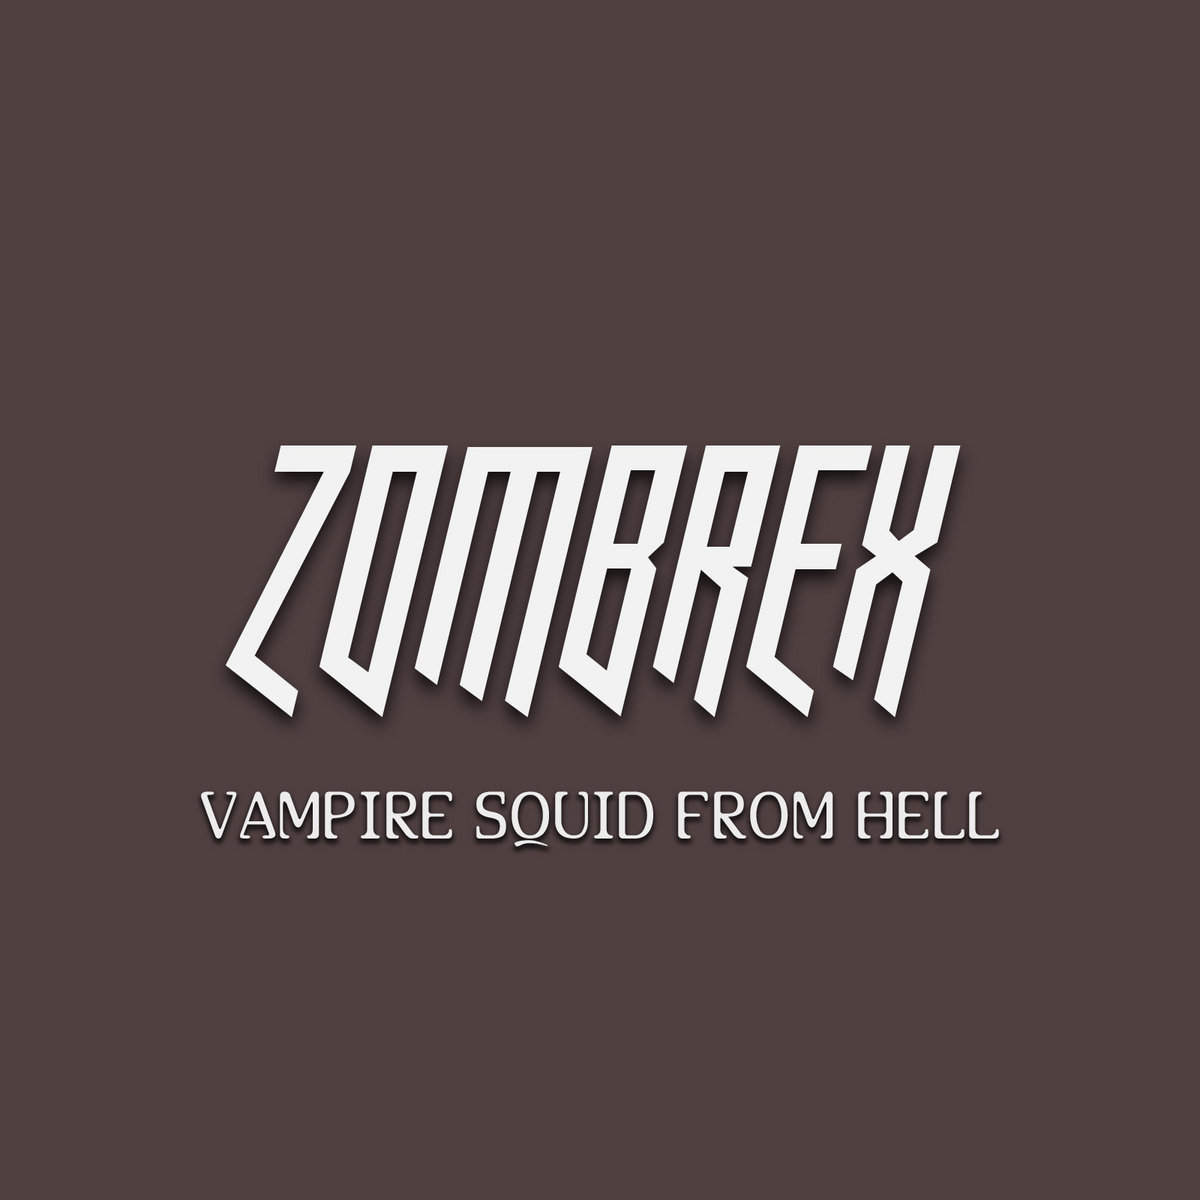 vampire squid from hell from vampire squid from hell single by zombrexVampire Squid From Hell